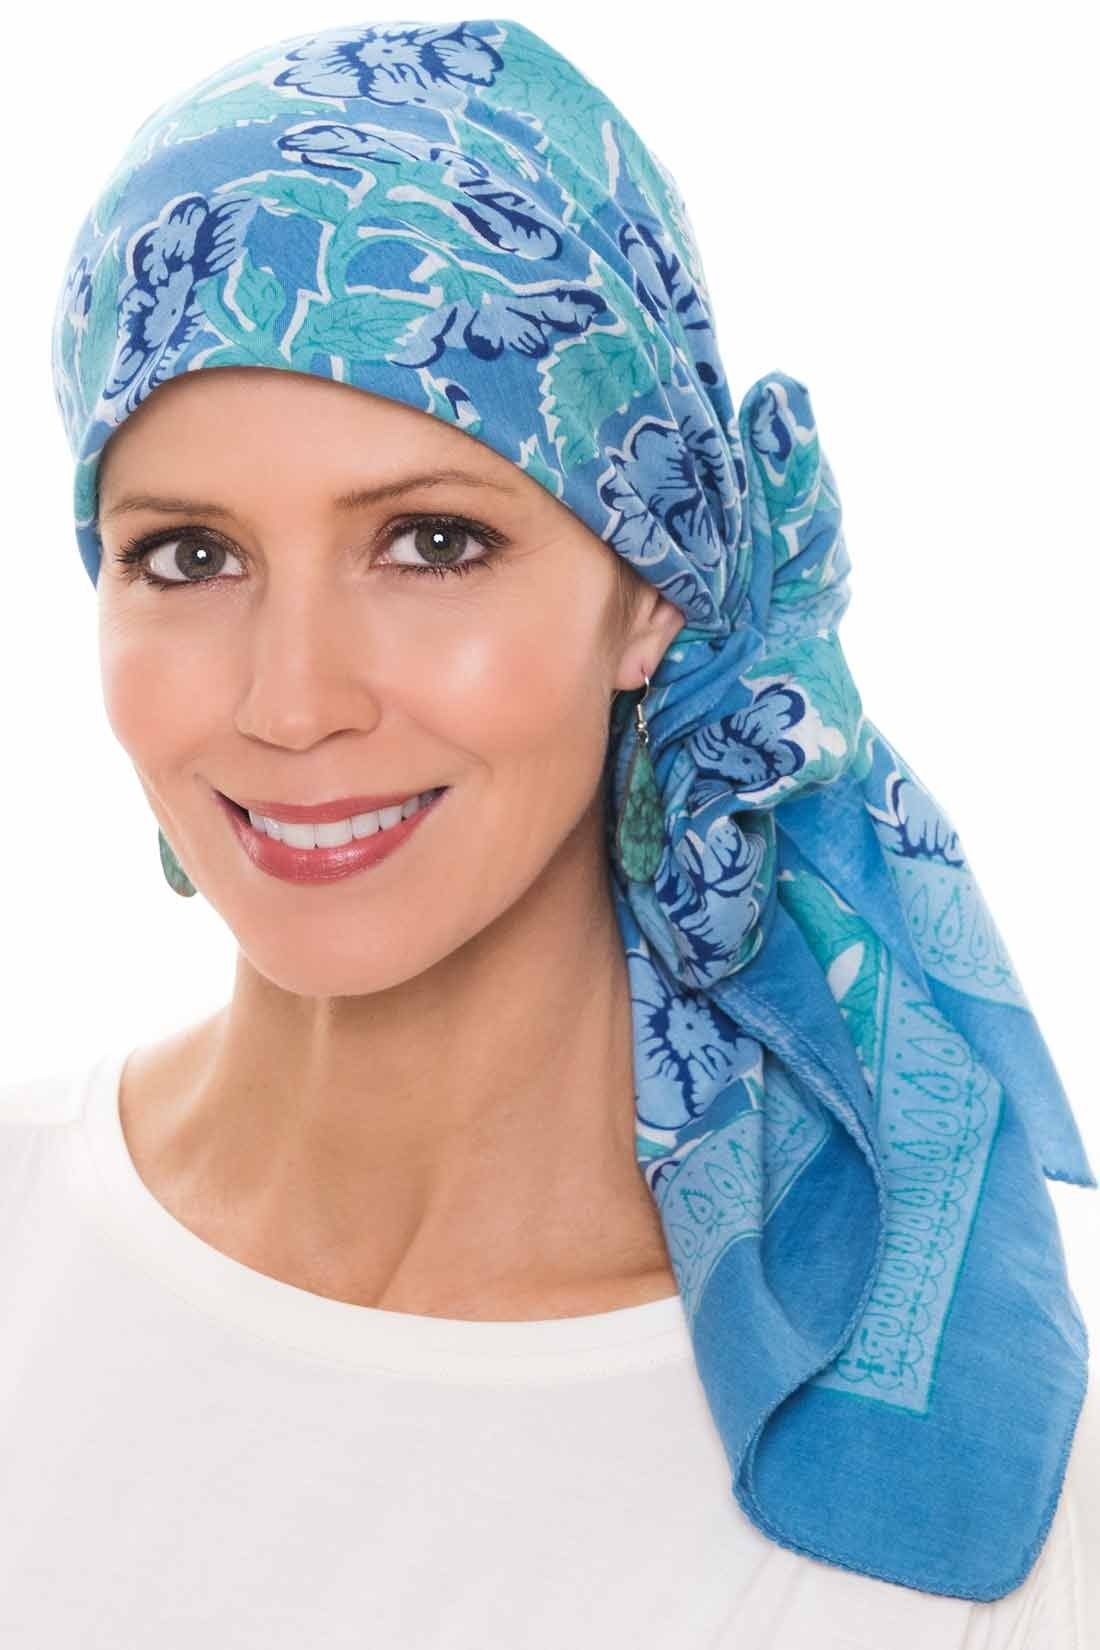 35-inch-woodblock-hand-printed-head-scarves-cancer-scarf-for-chemo